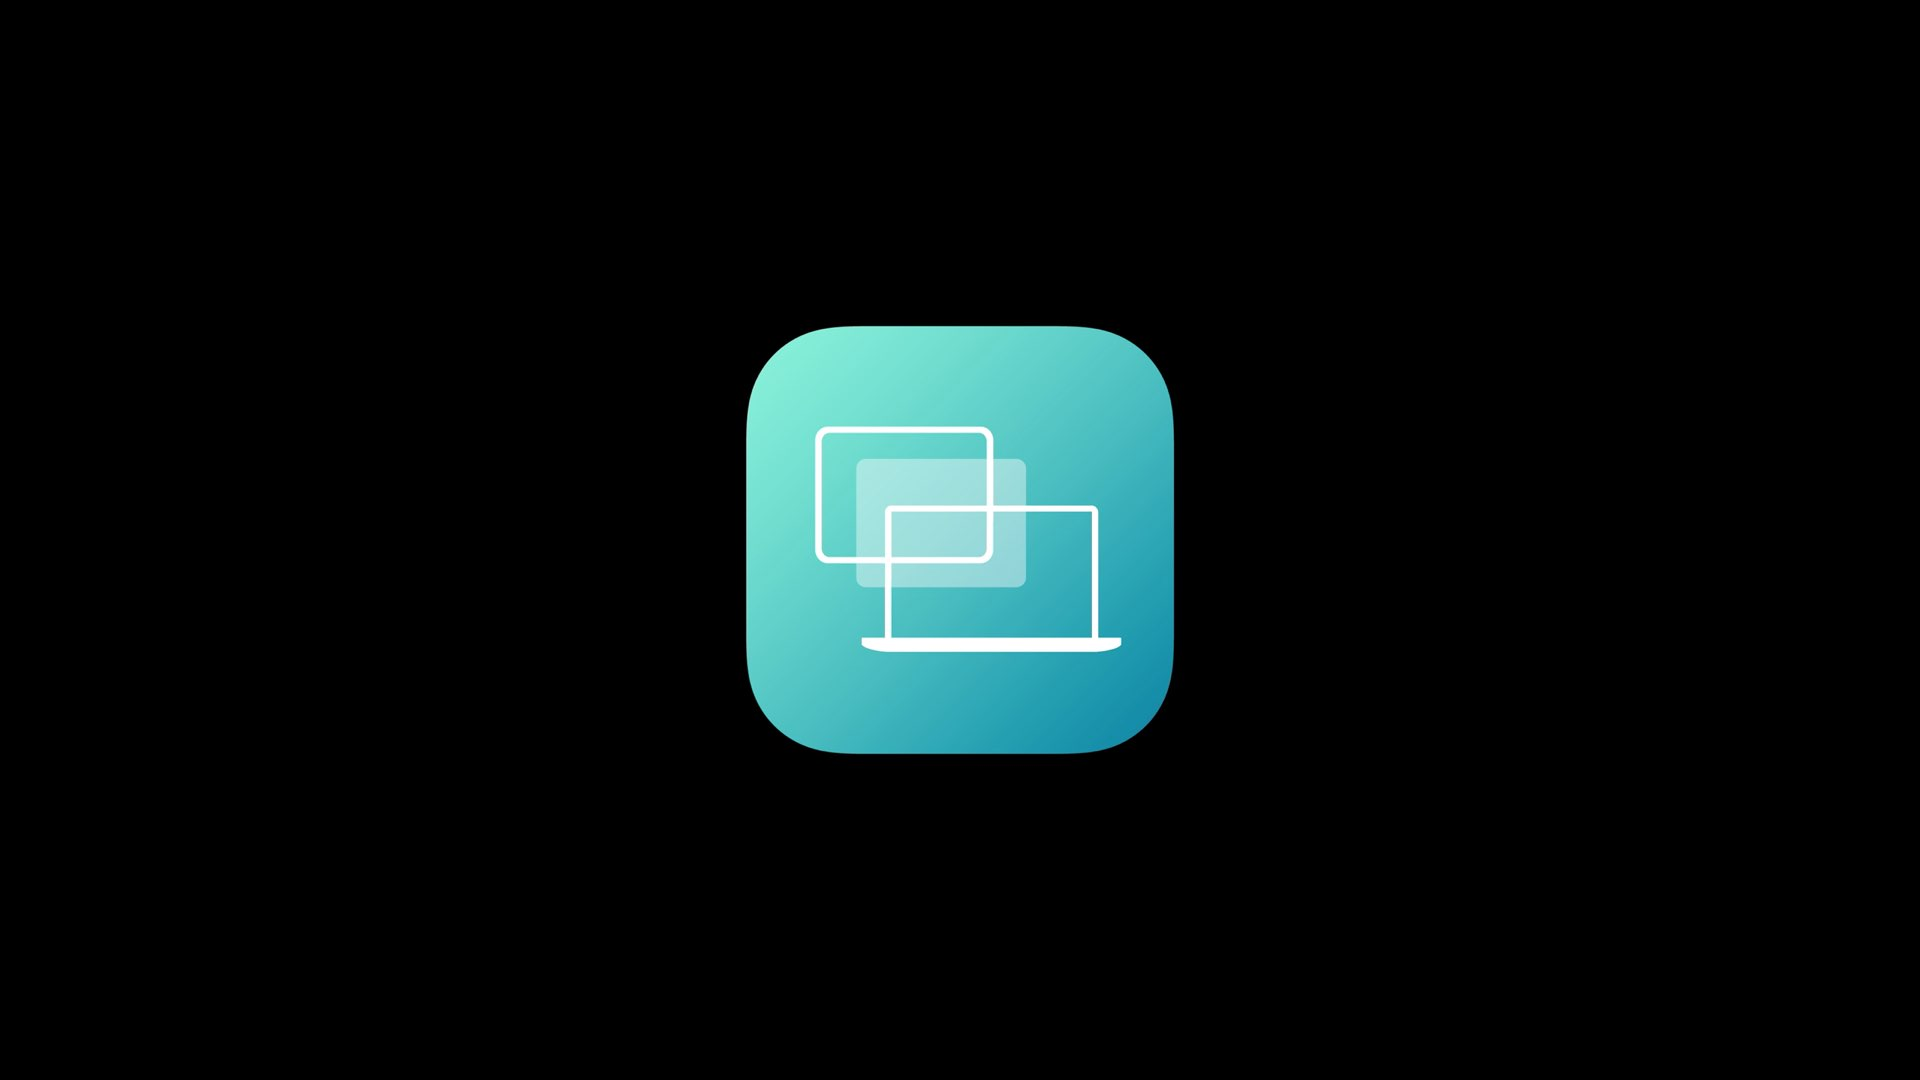 iPhone apps Apple Silicon Macs